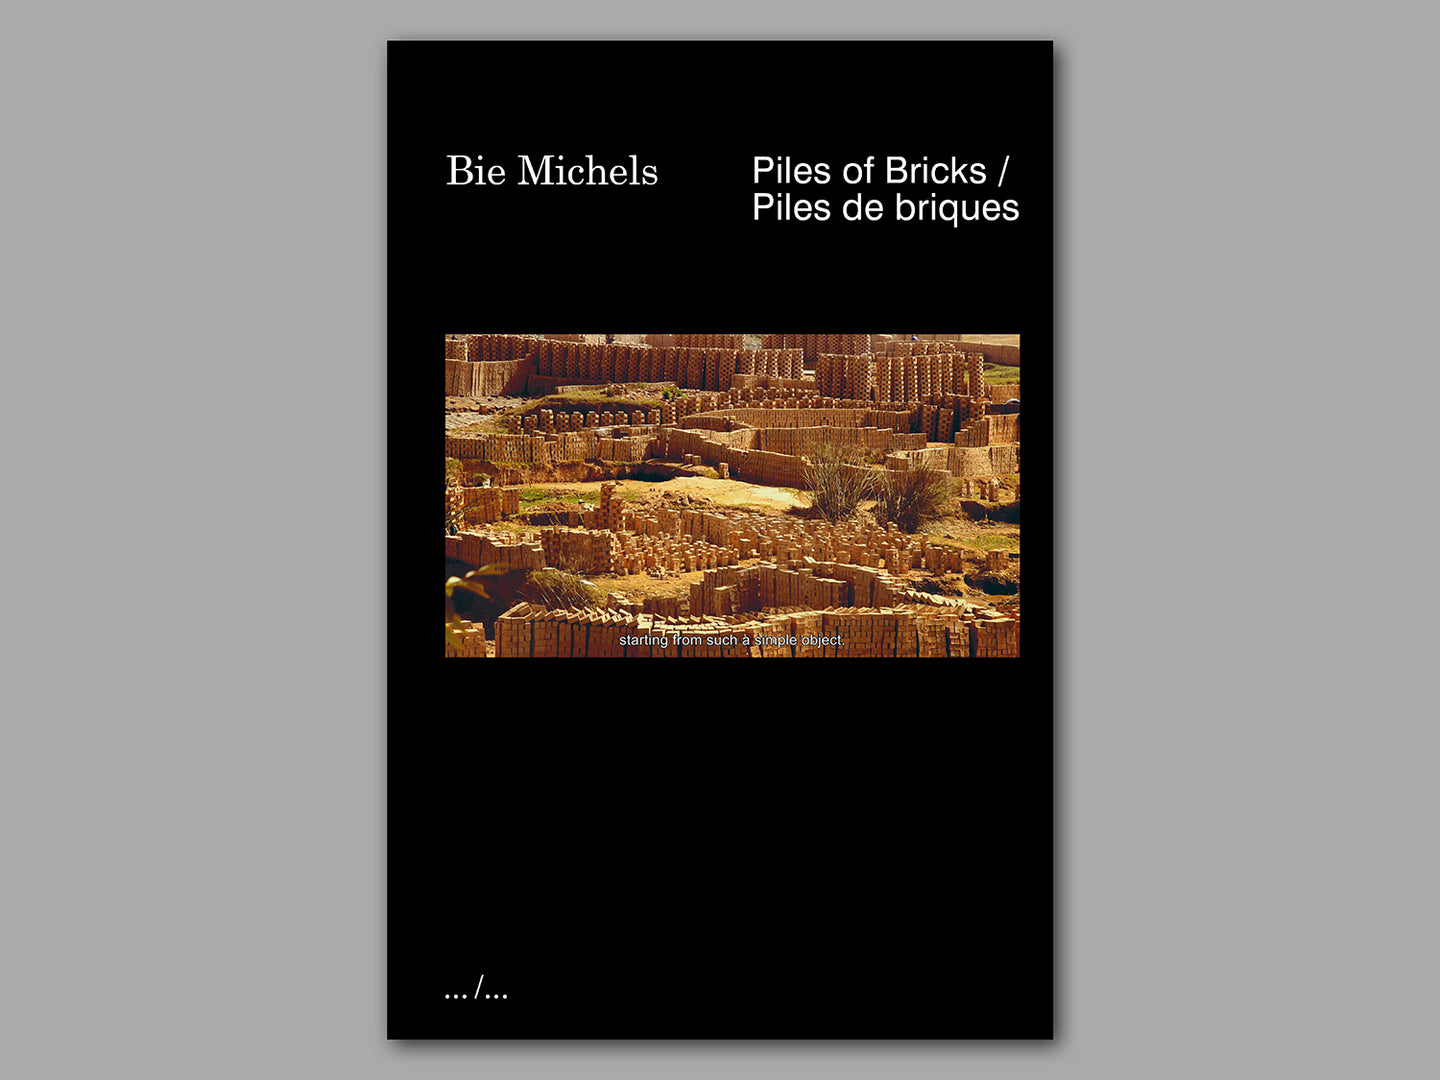 Piles of Bricks by Bie Michels